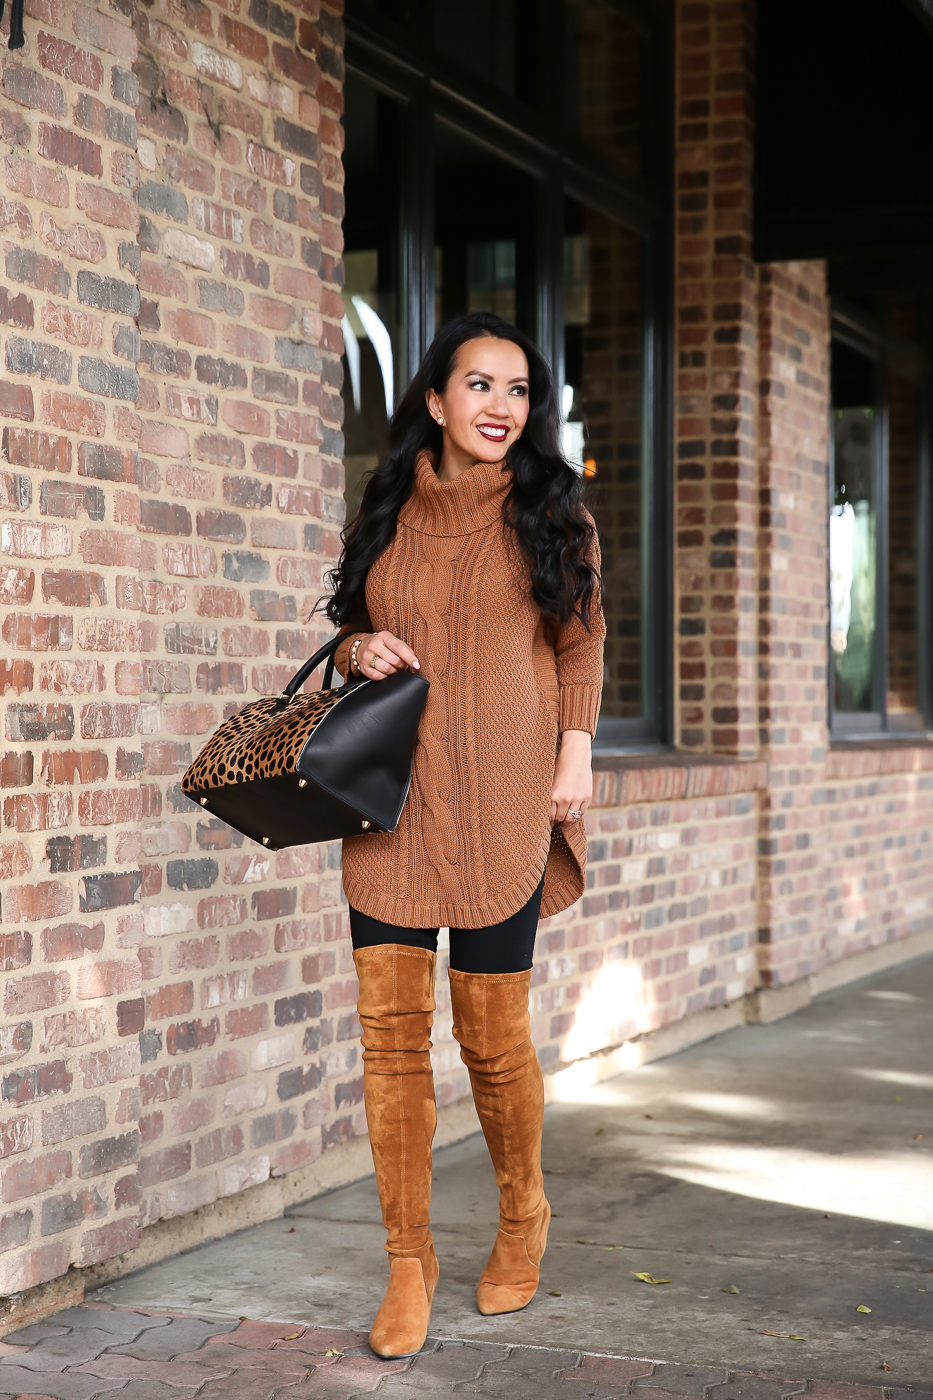 cowl neck cable knit sweater marla OTK boots leopard satchel